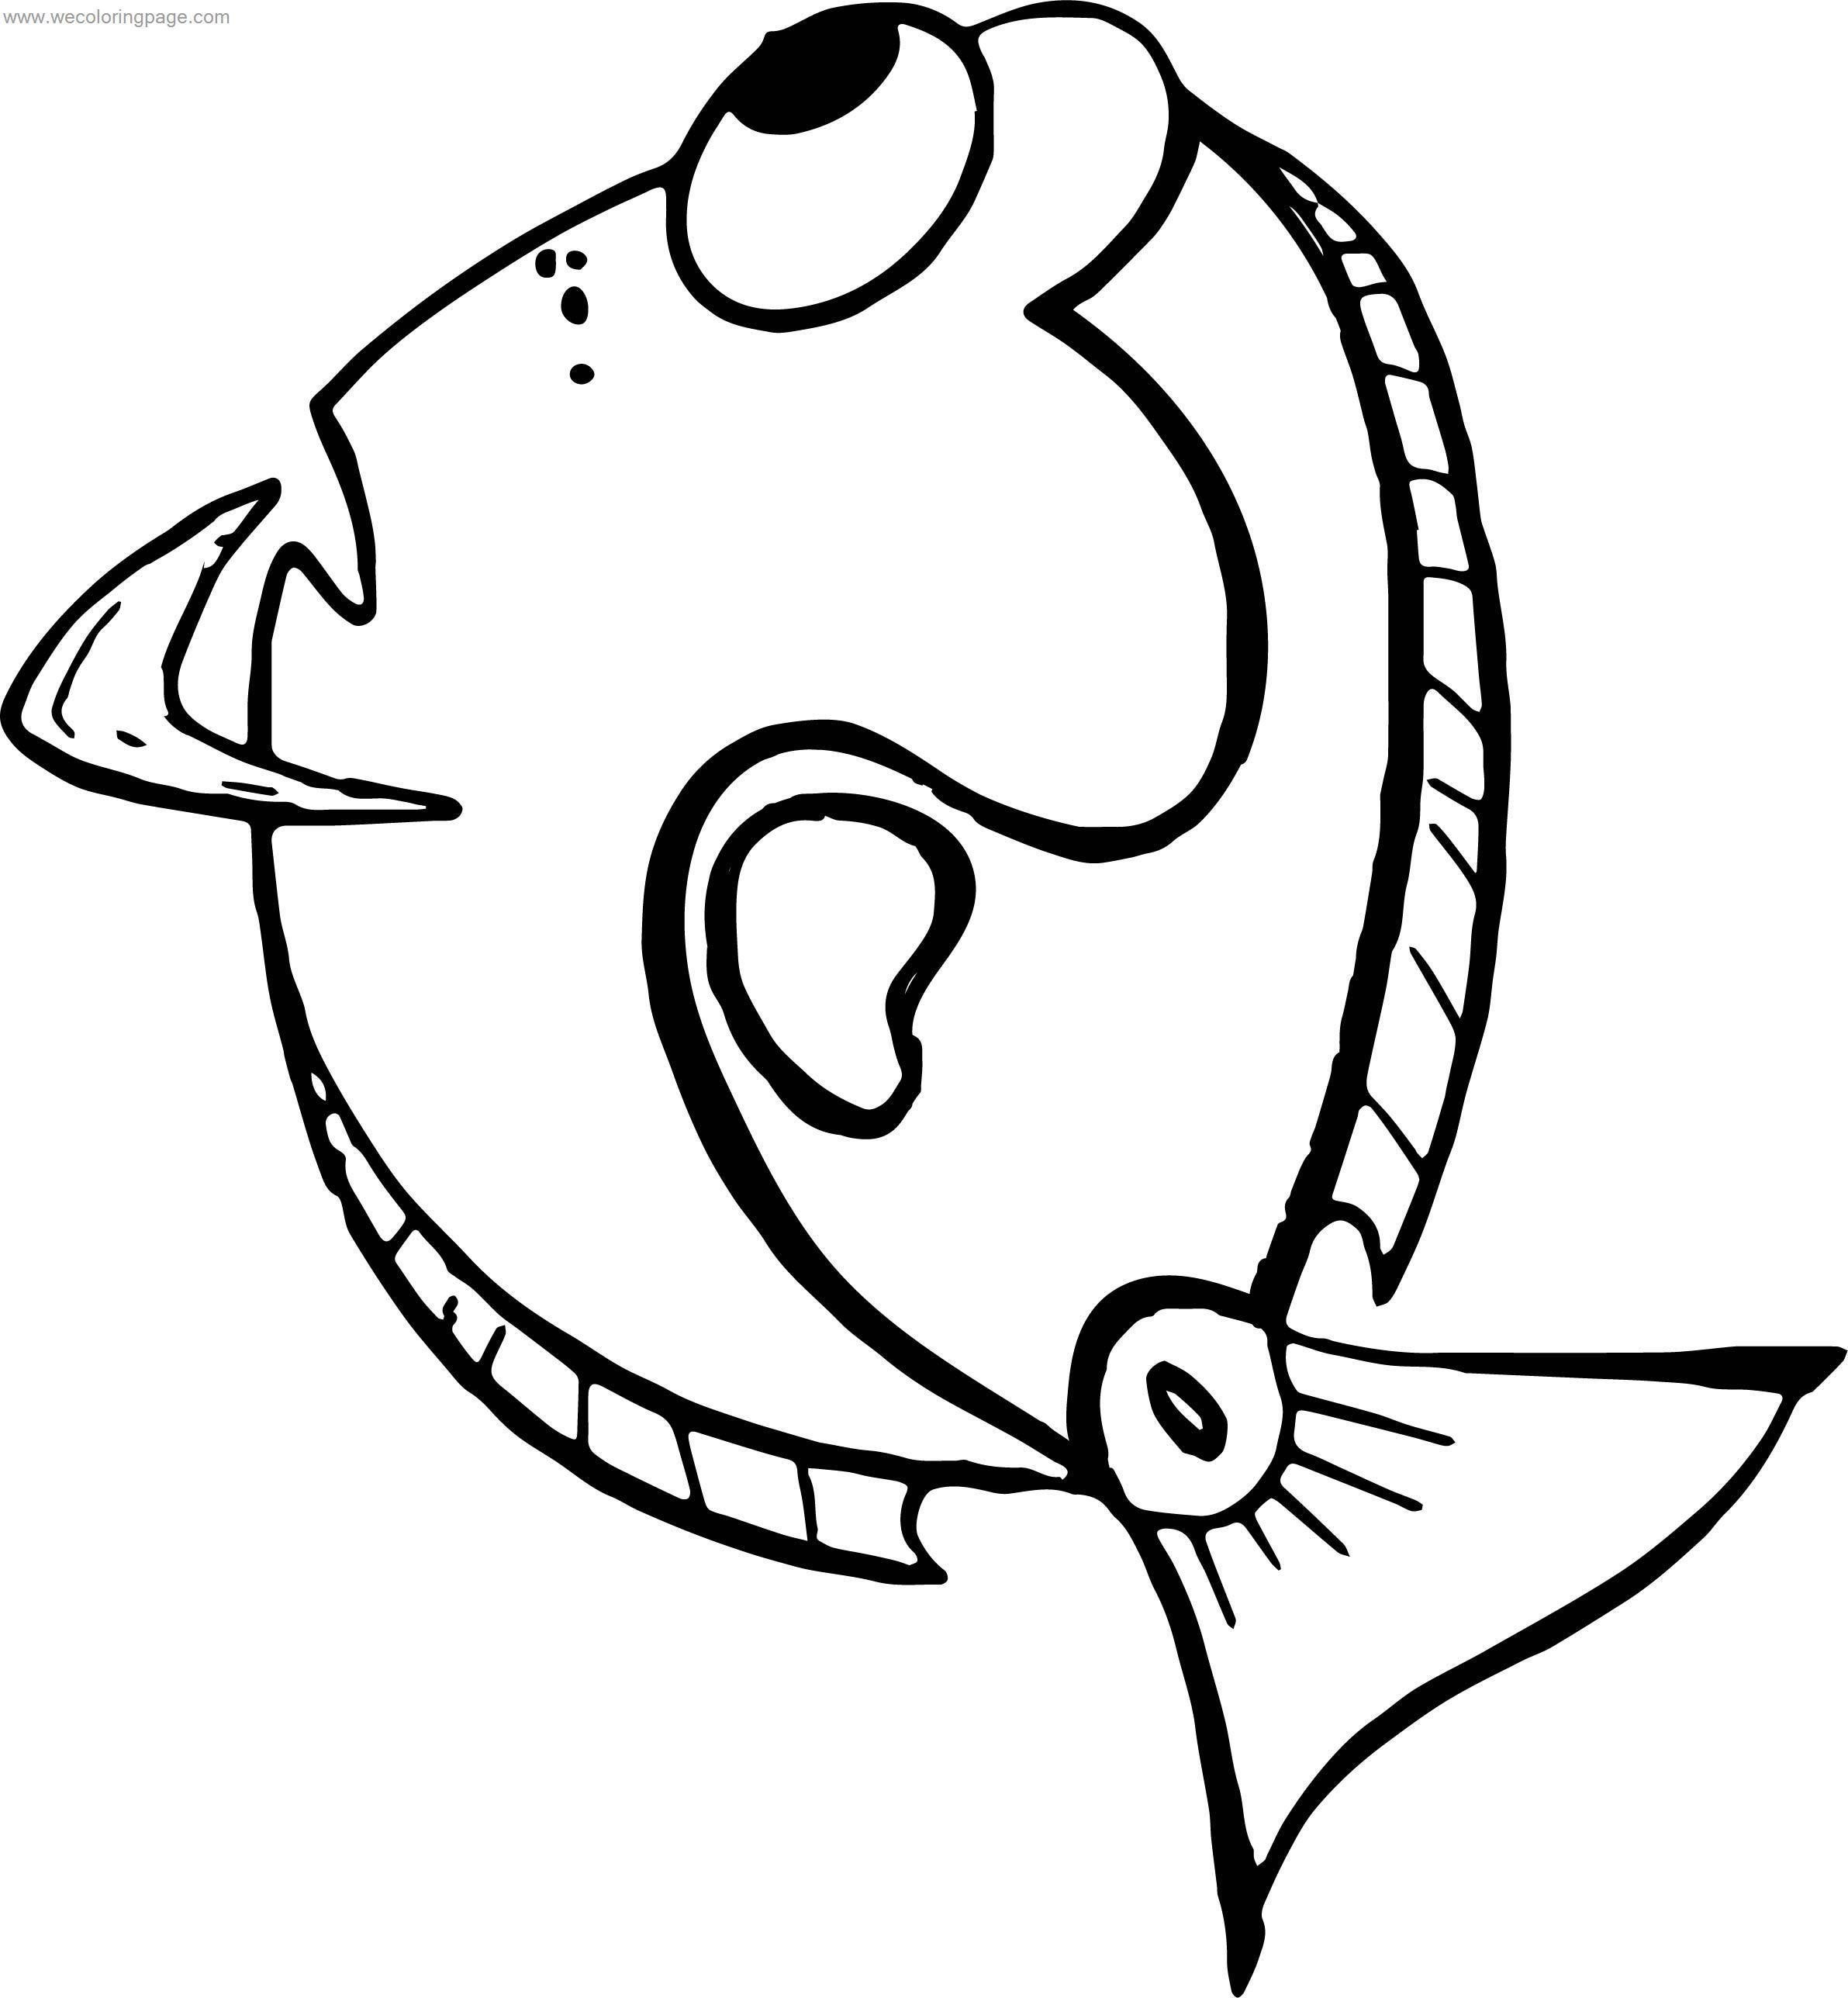 Disney Finding Nemo Thinking Coloring Pages